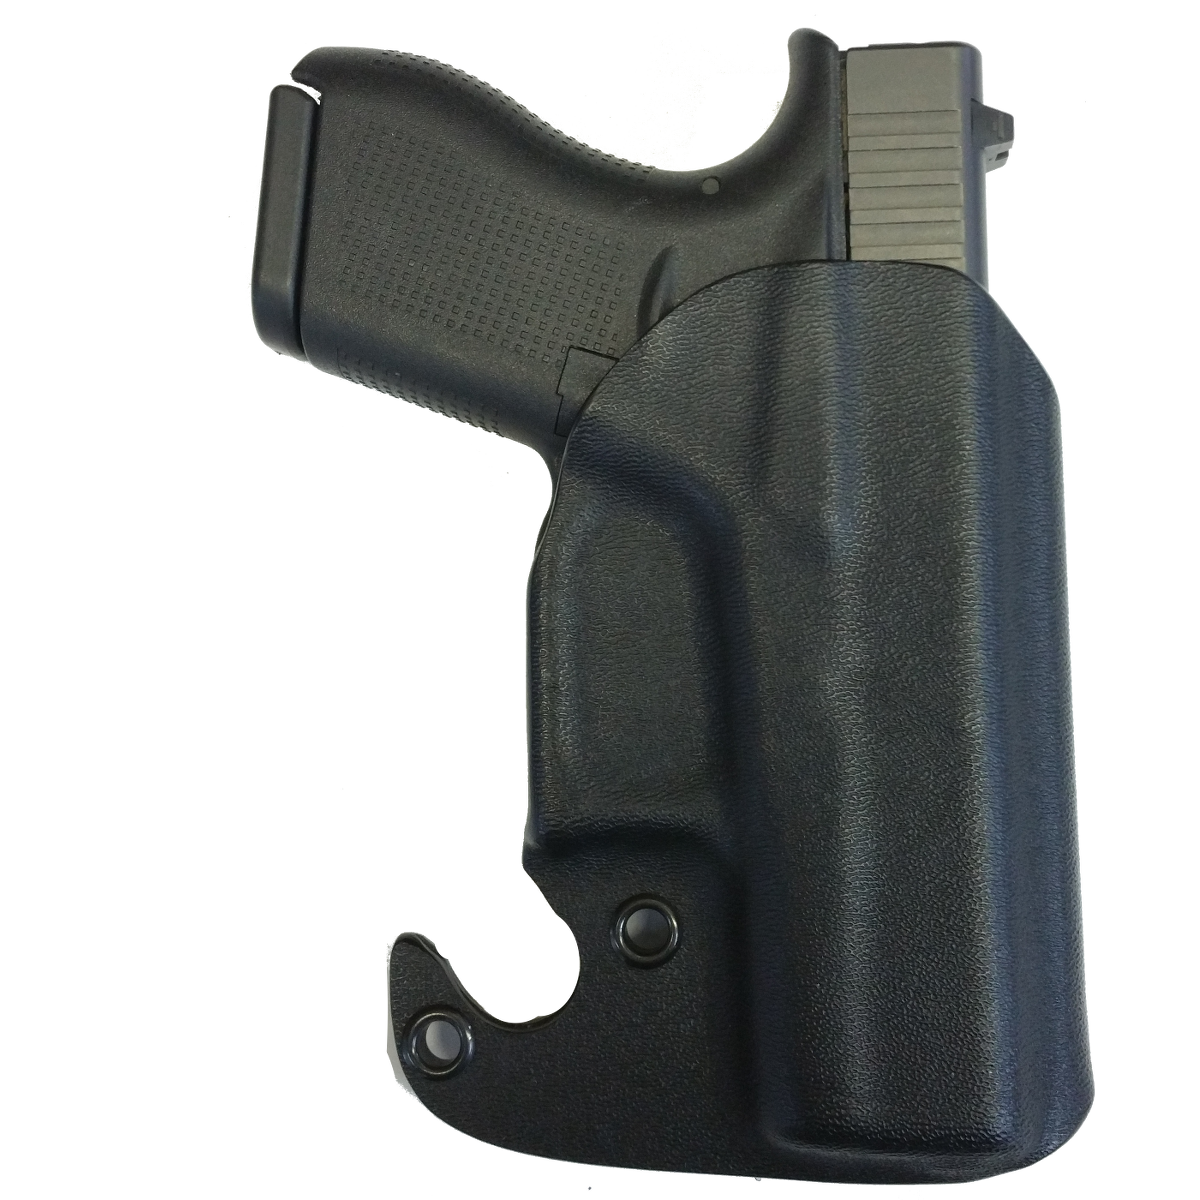 Kydex clip pocket. Theisholsters products description